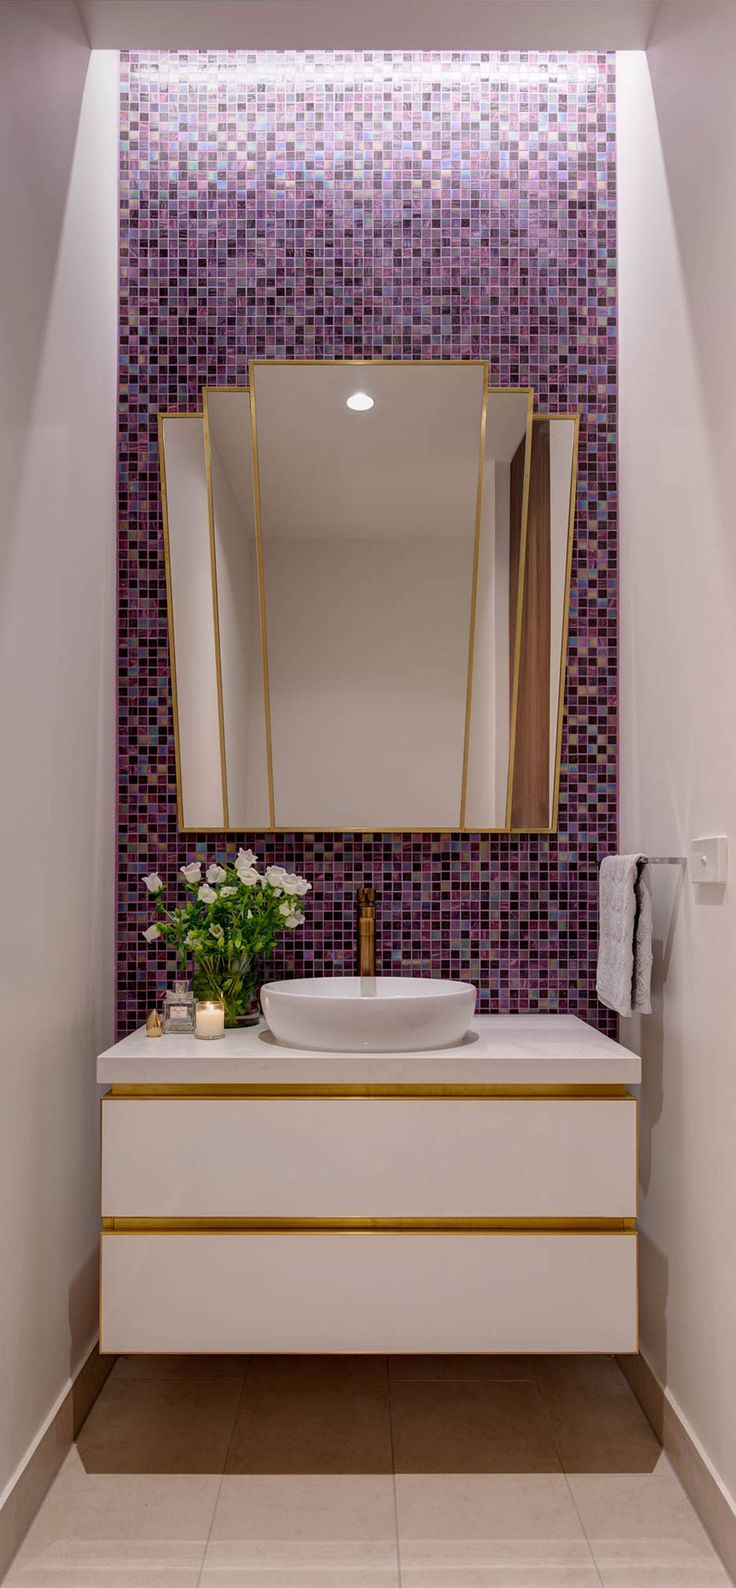 52 best real world reno - bathroom images on pinterest